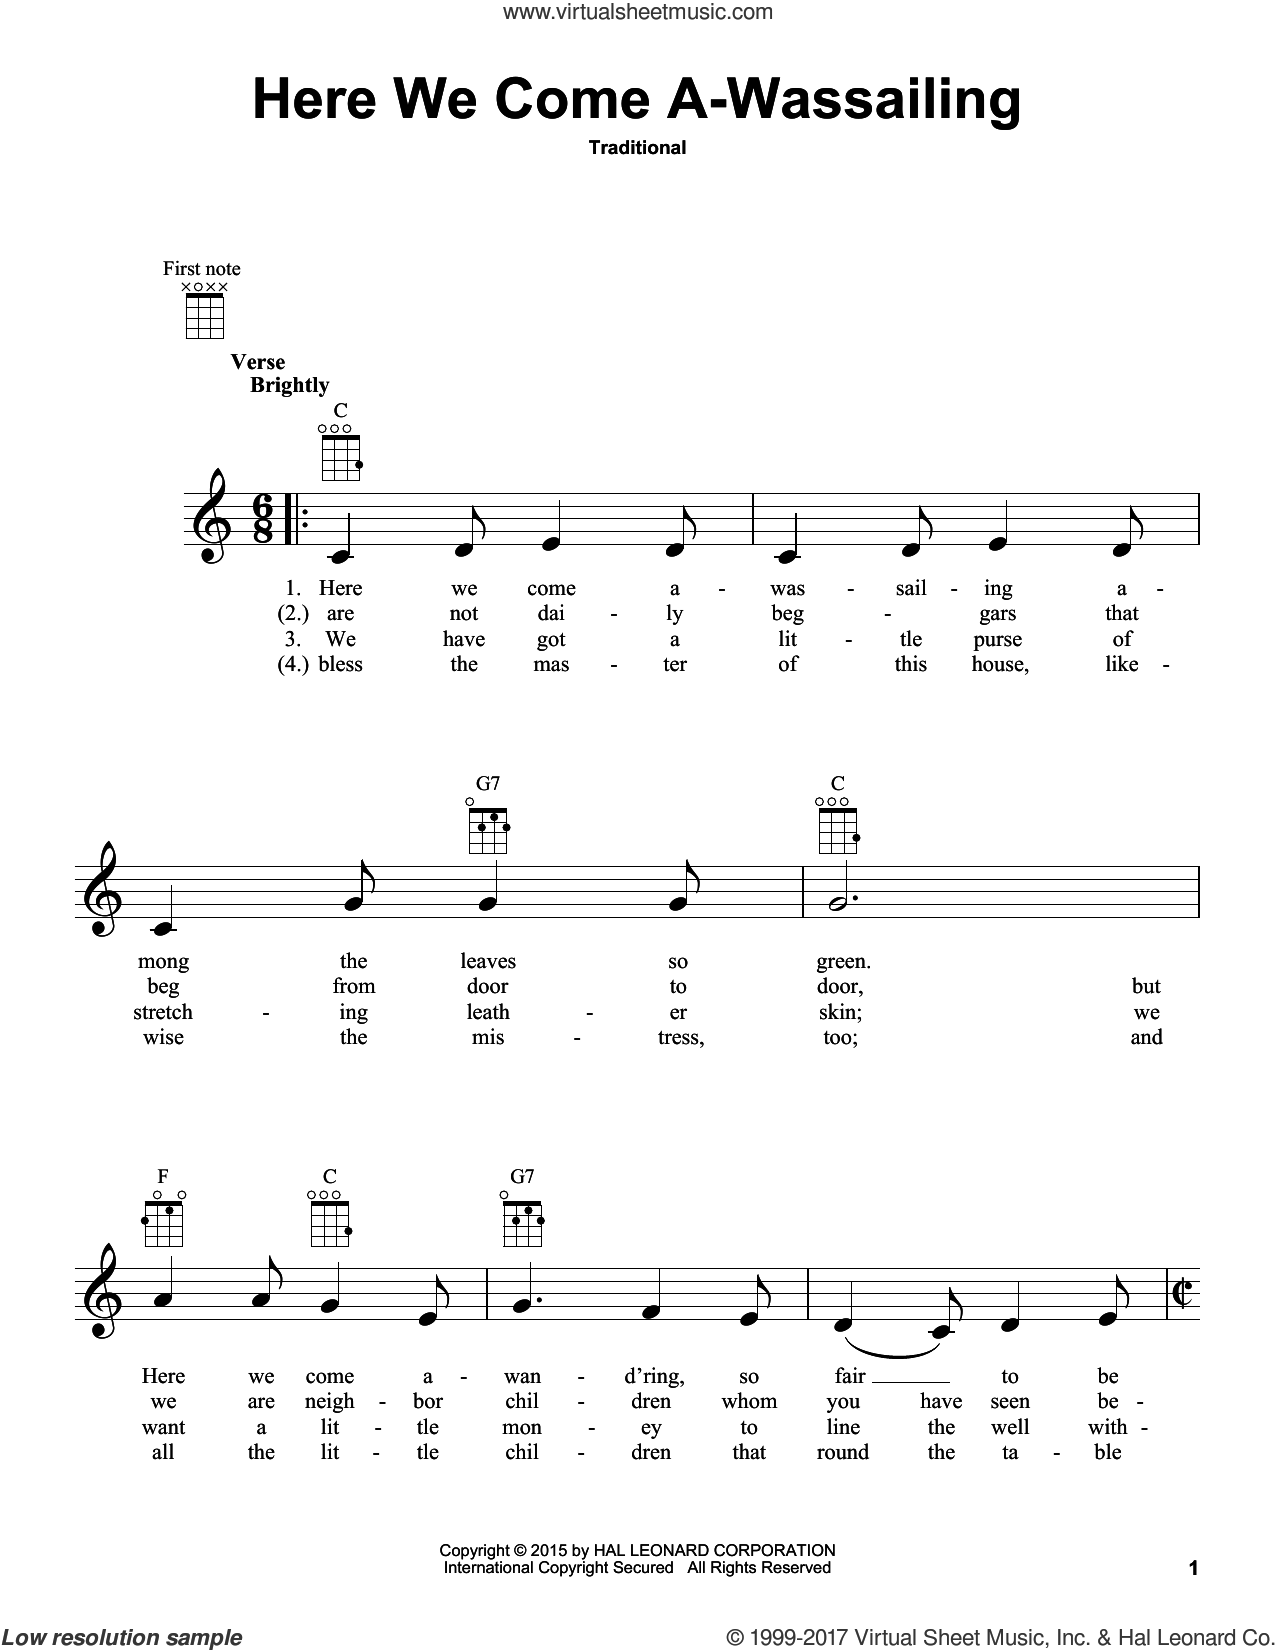 Here We Come A-Wassailing sheet music for ukulele, intermediate skill level